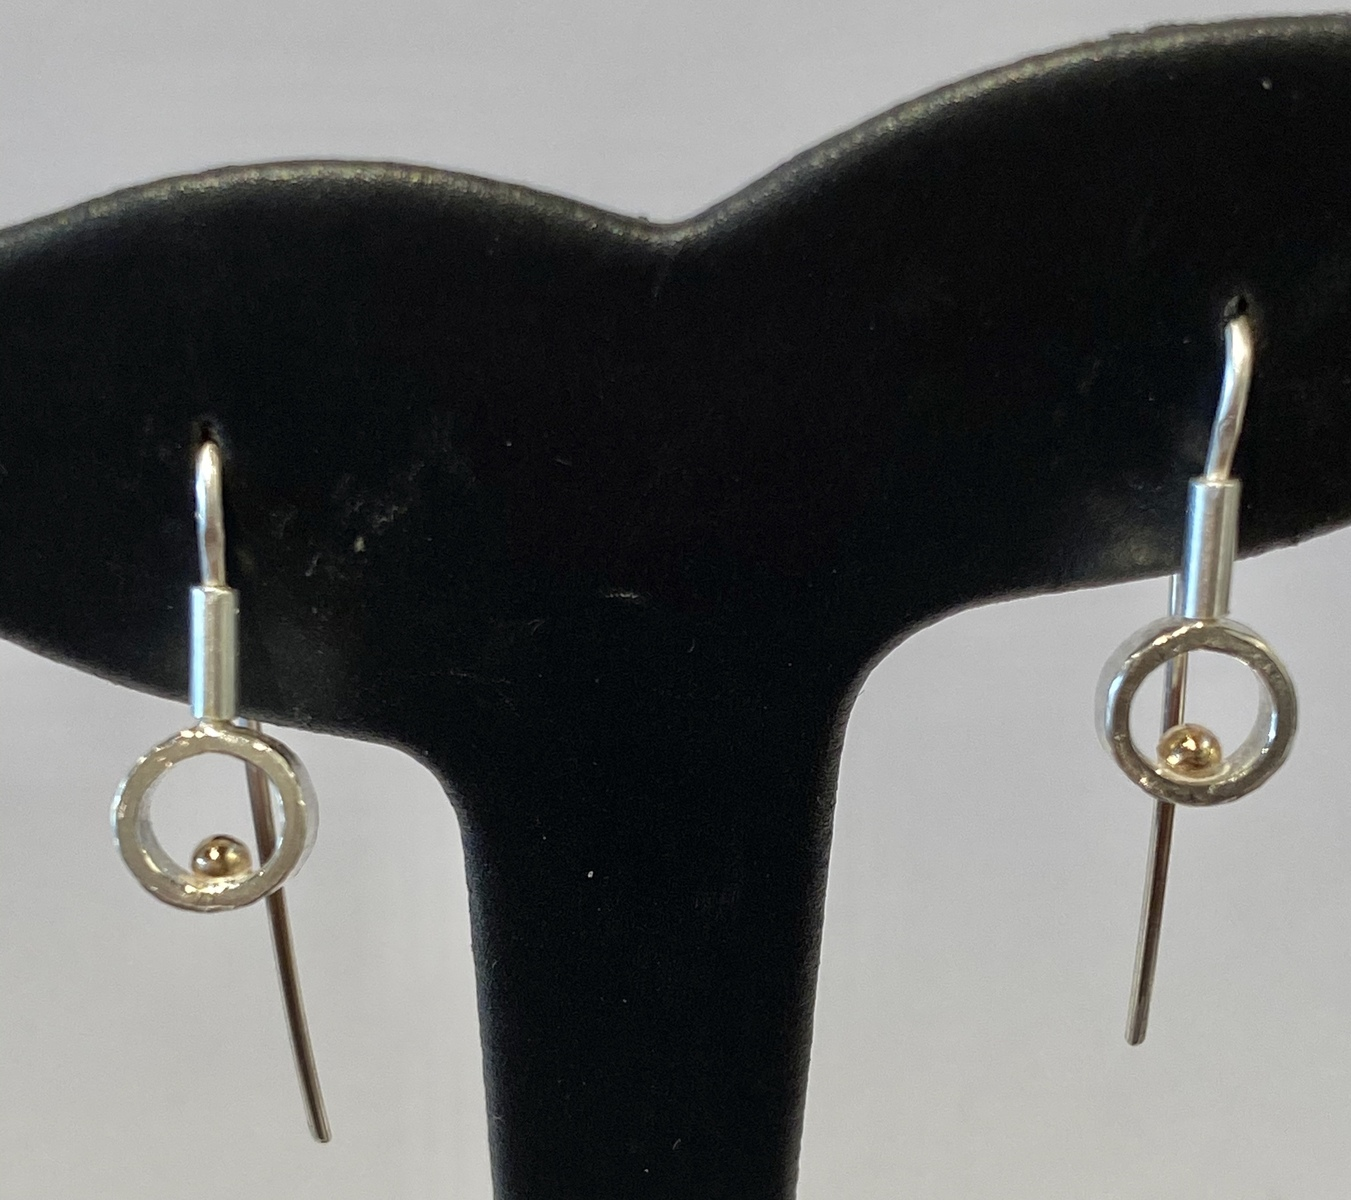 Round frame with gold ball earrings (small) - GOLD BALL SERIES